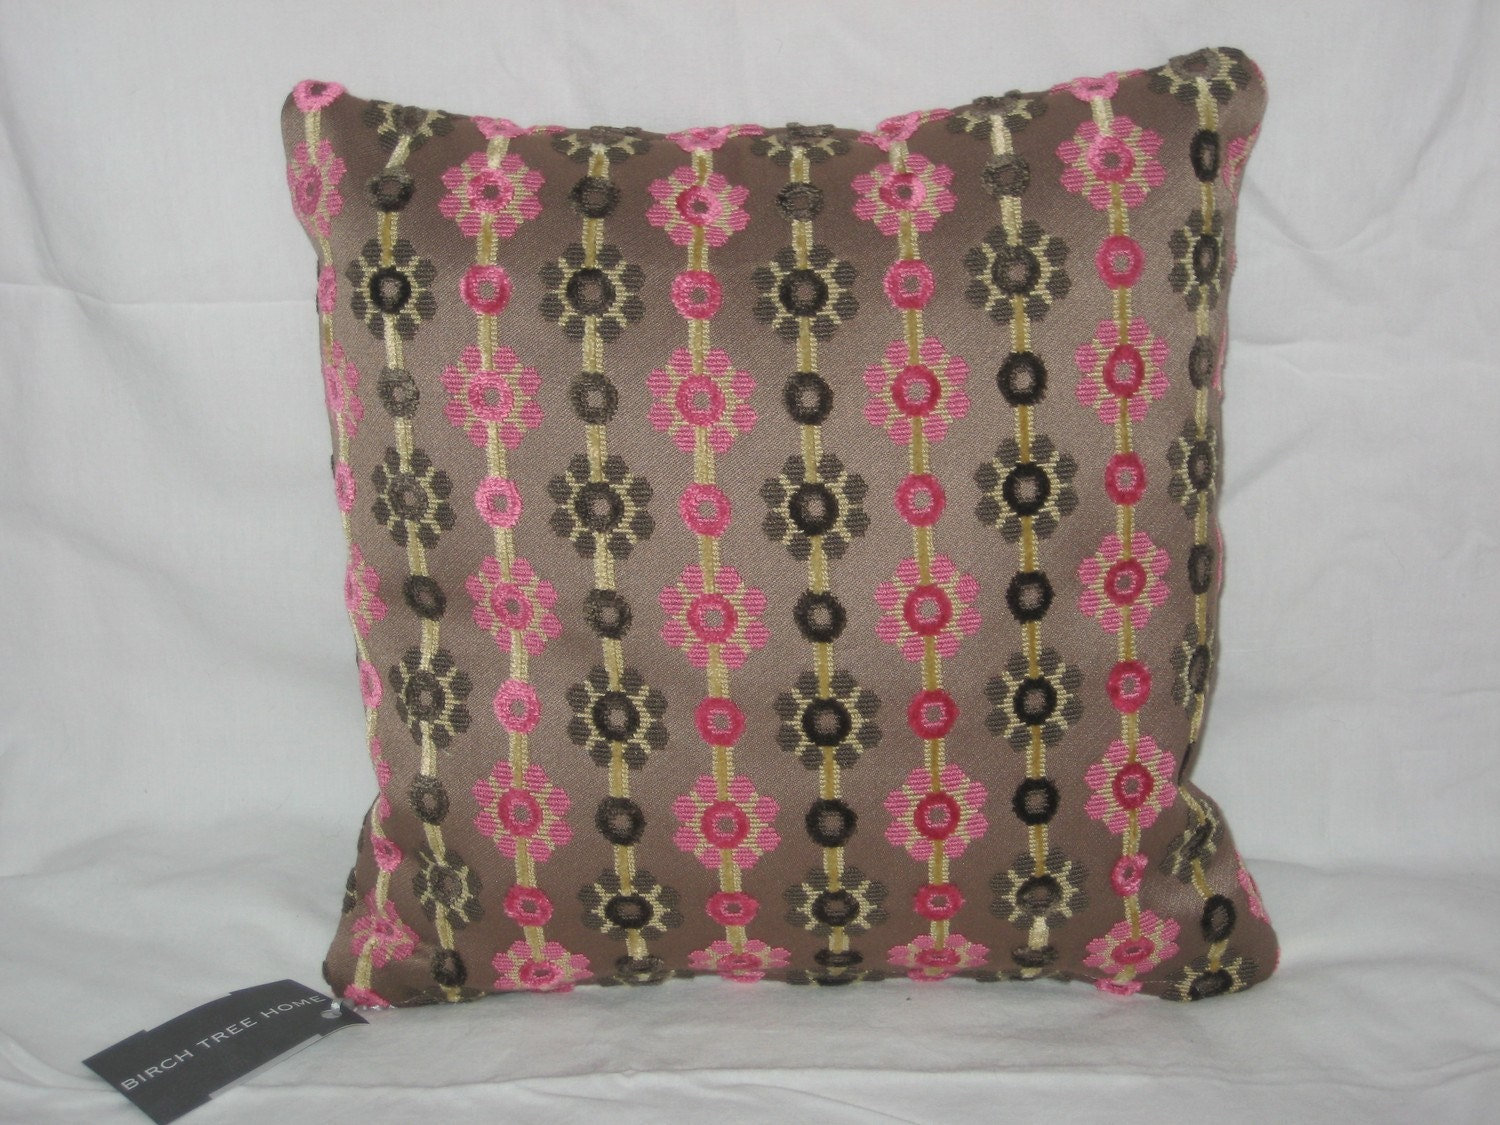 pink and brown velvet pillow cover 14x14. Black Bedroom Furniture Sets. Home Design Ideas